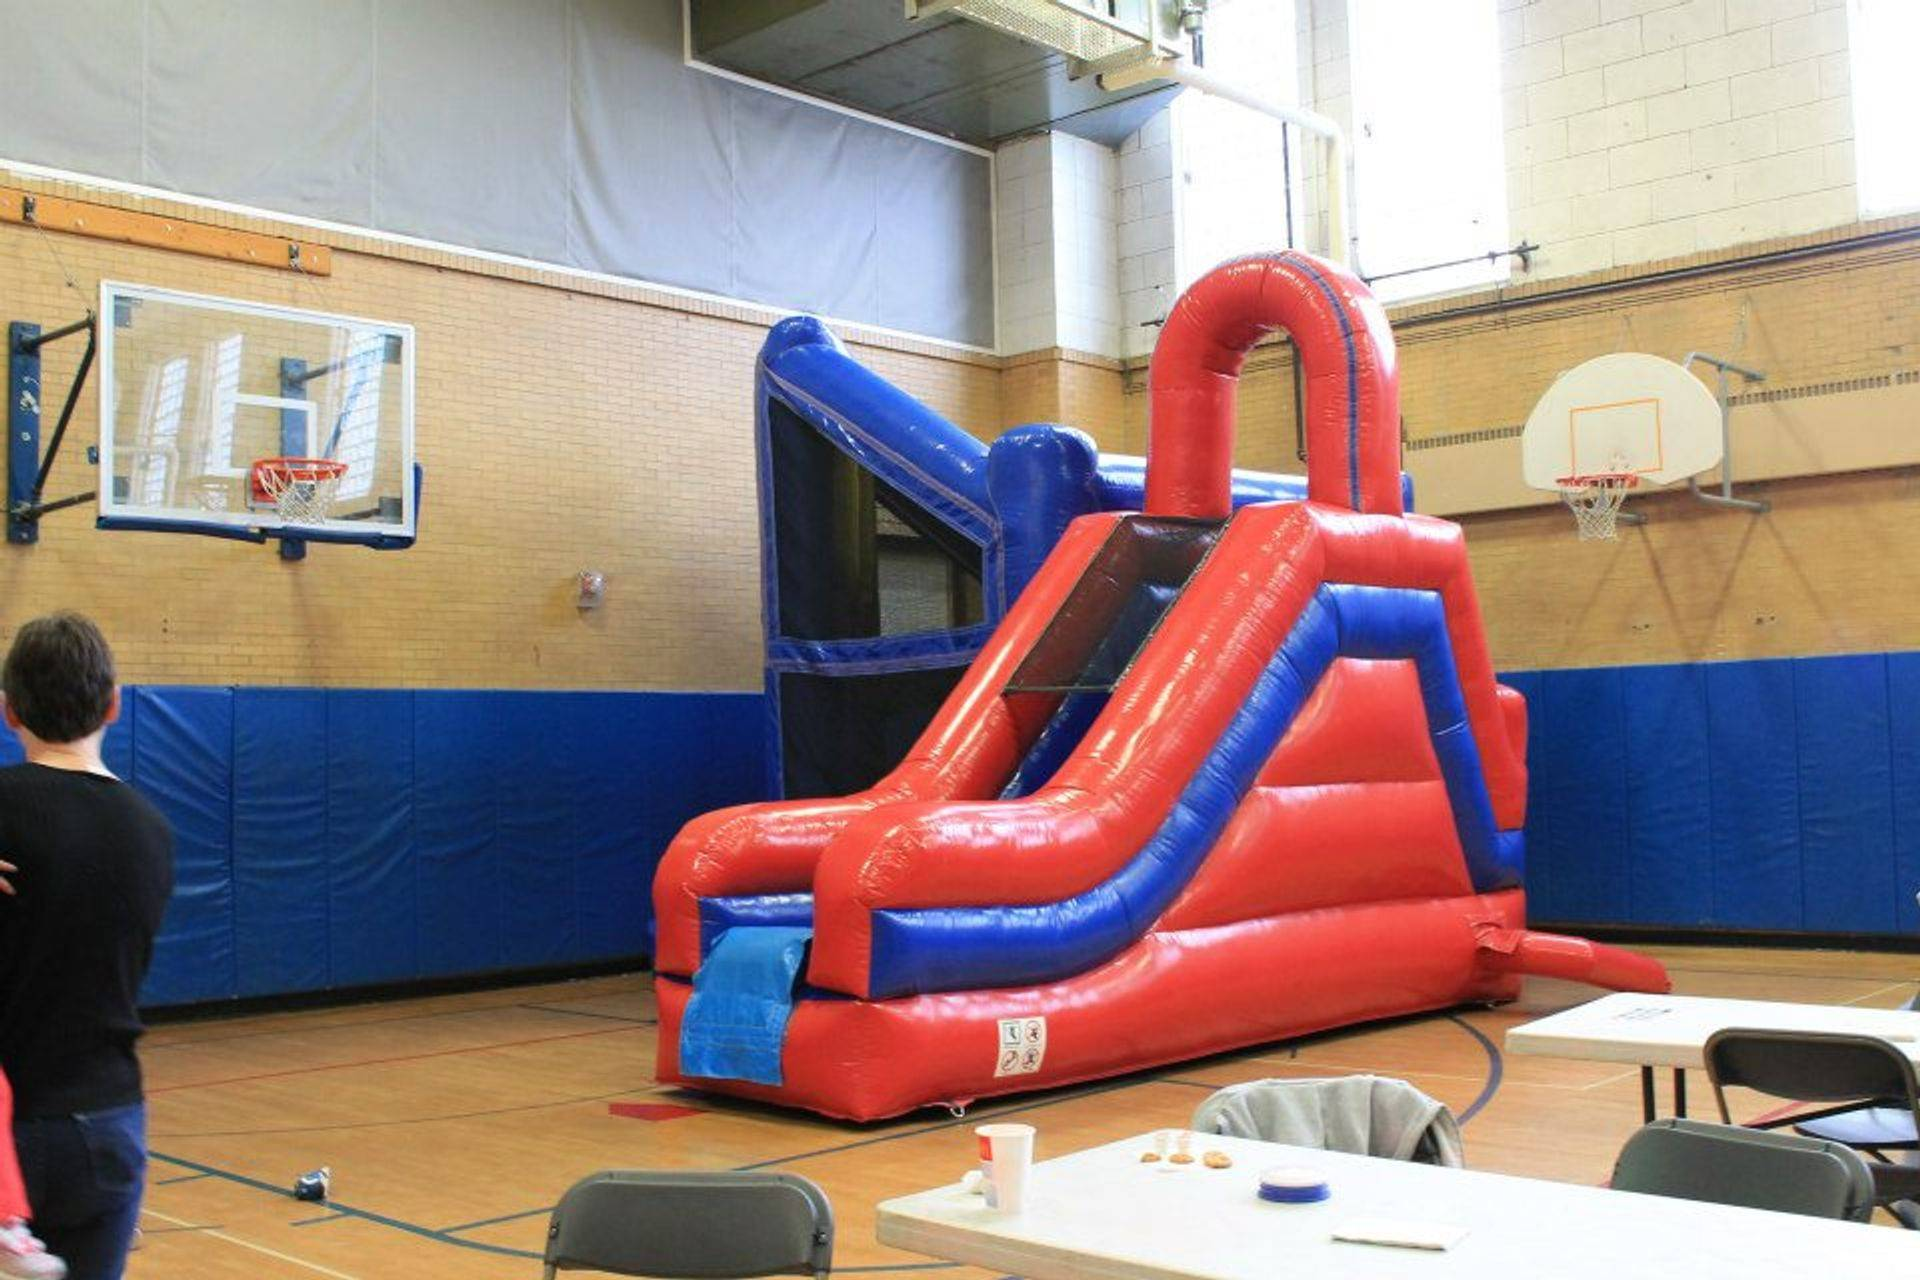 Castle Bounces, Bounce with Slides, Obstacle Courses, and Water Slides